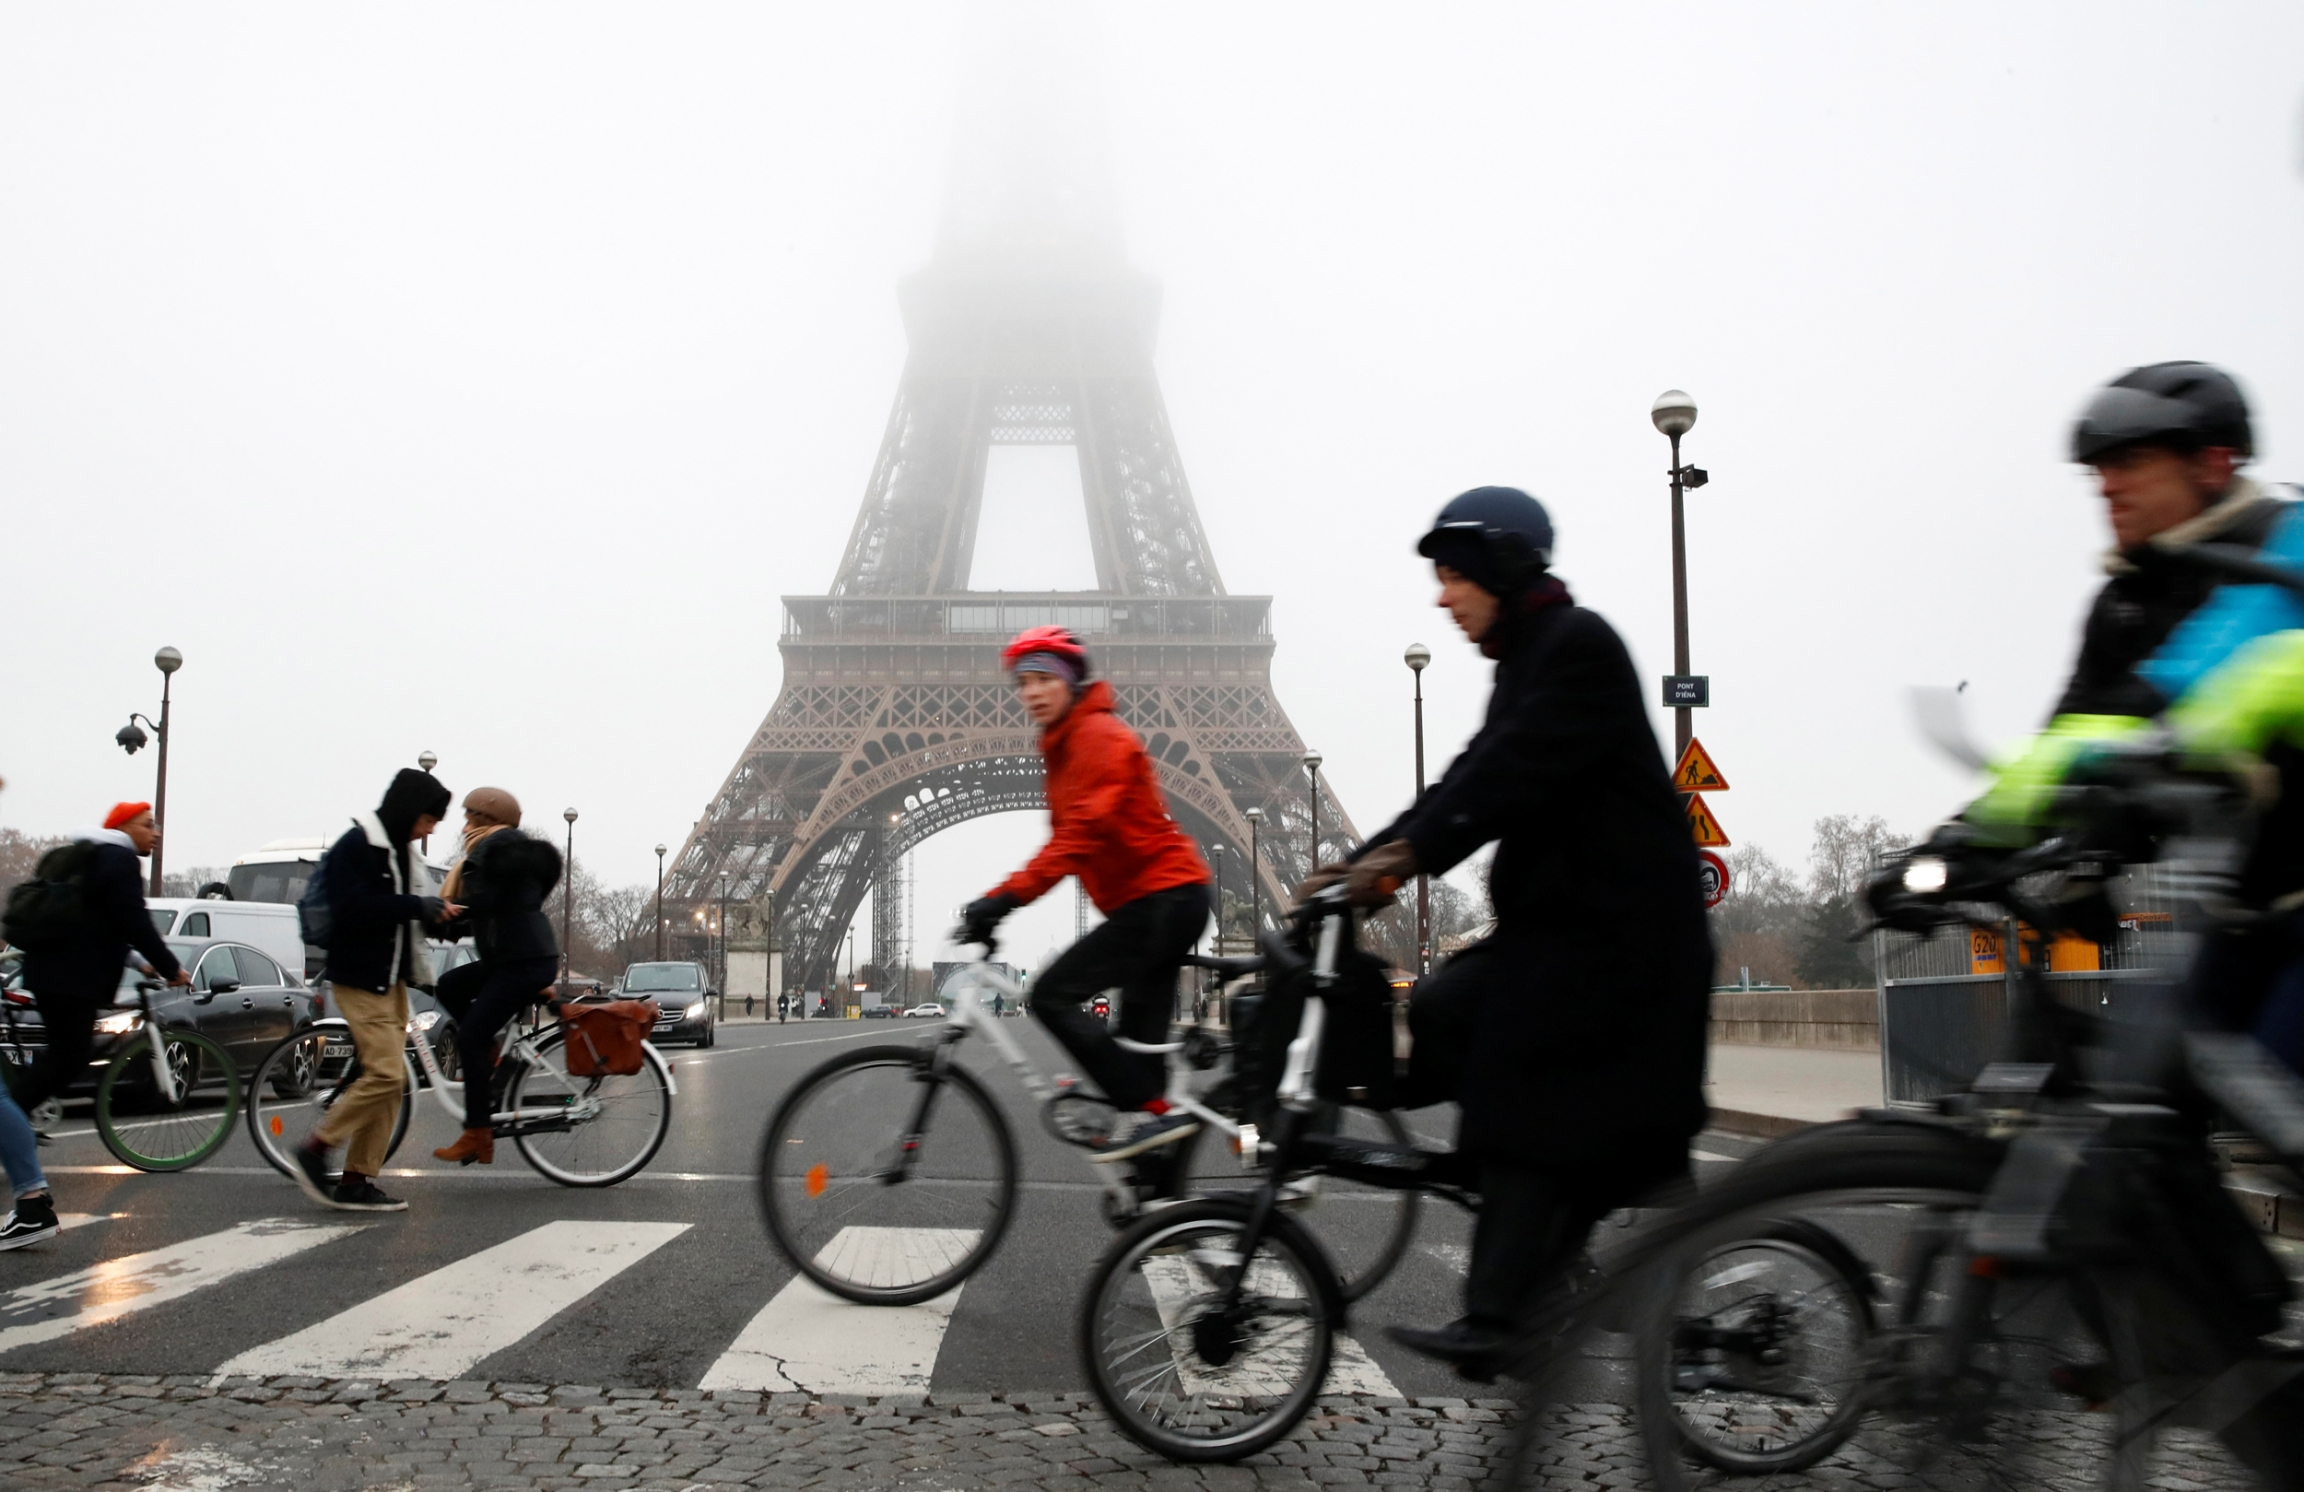 Several people are shown riding bicycles and crossing the street near the Eiffel Tower during a strike by all unions of the Paris transport network.